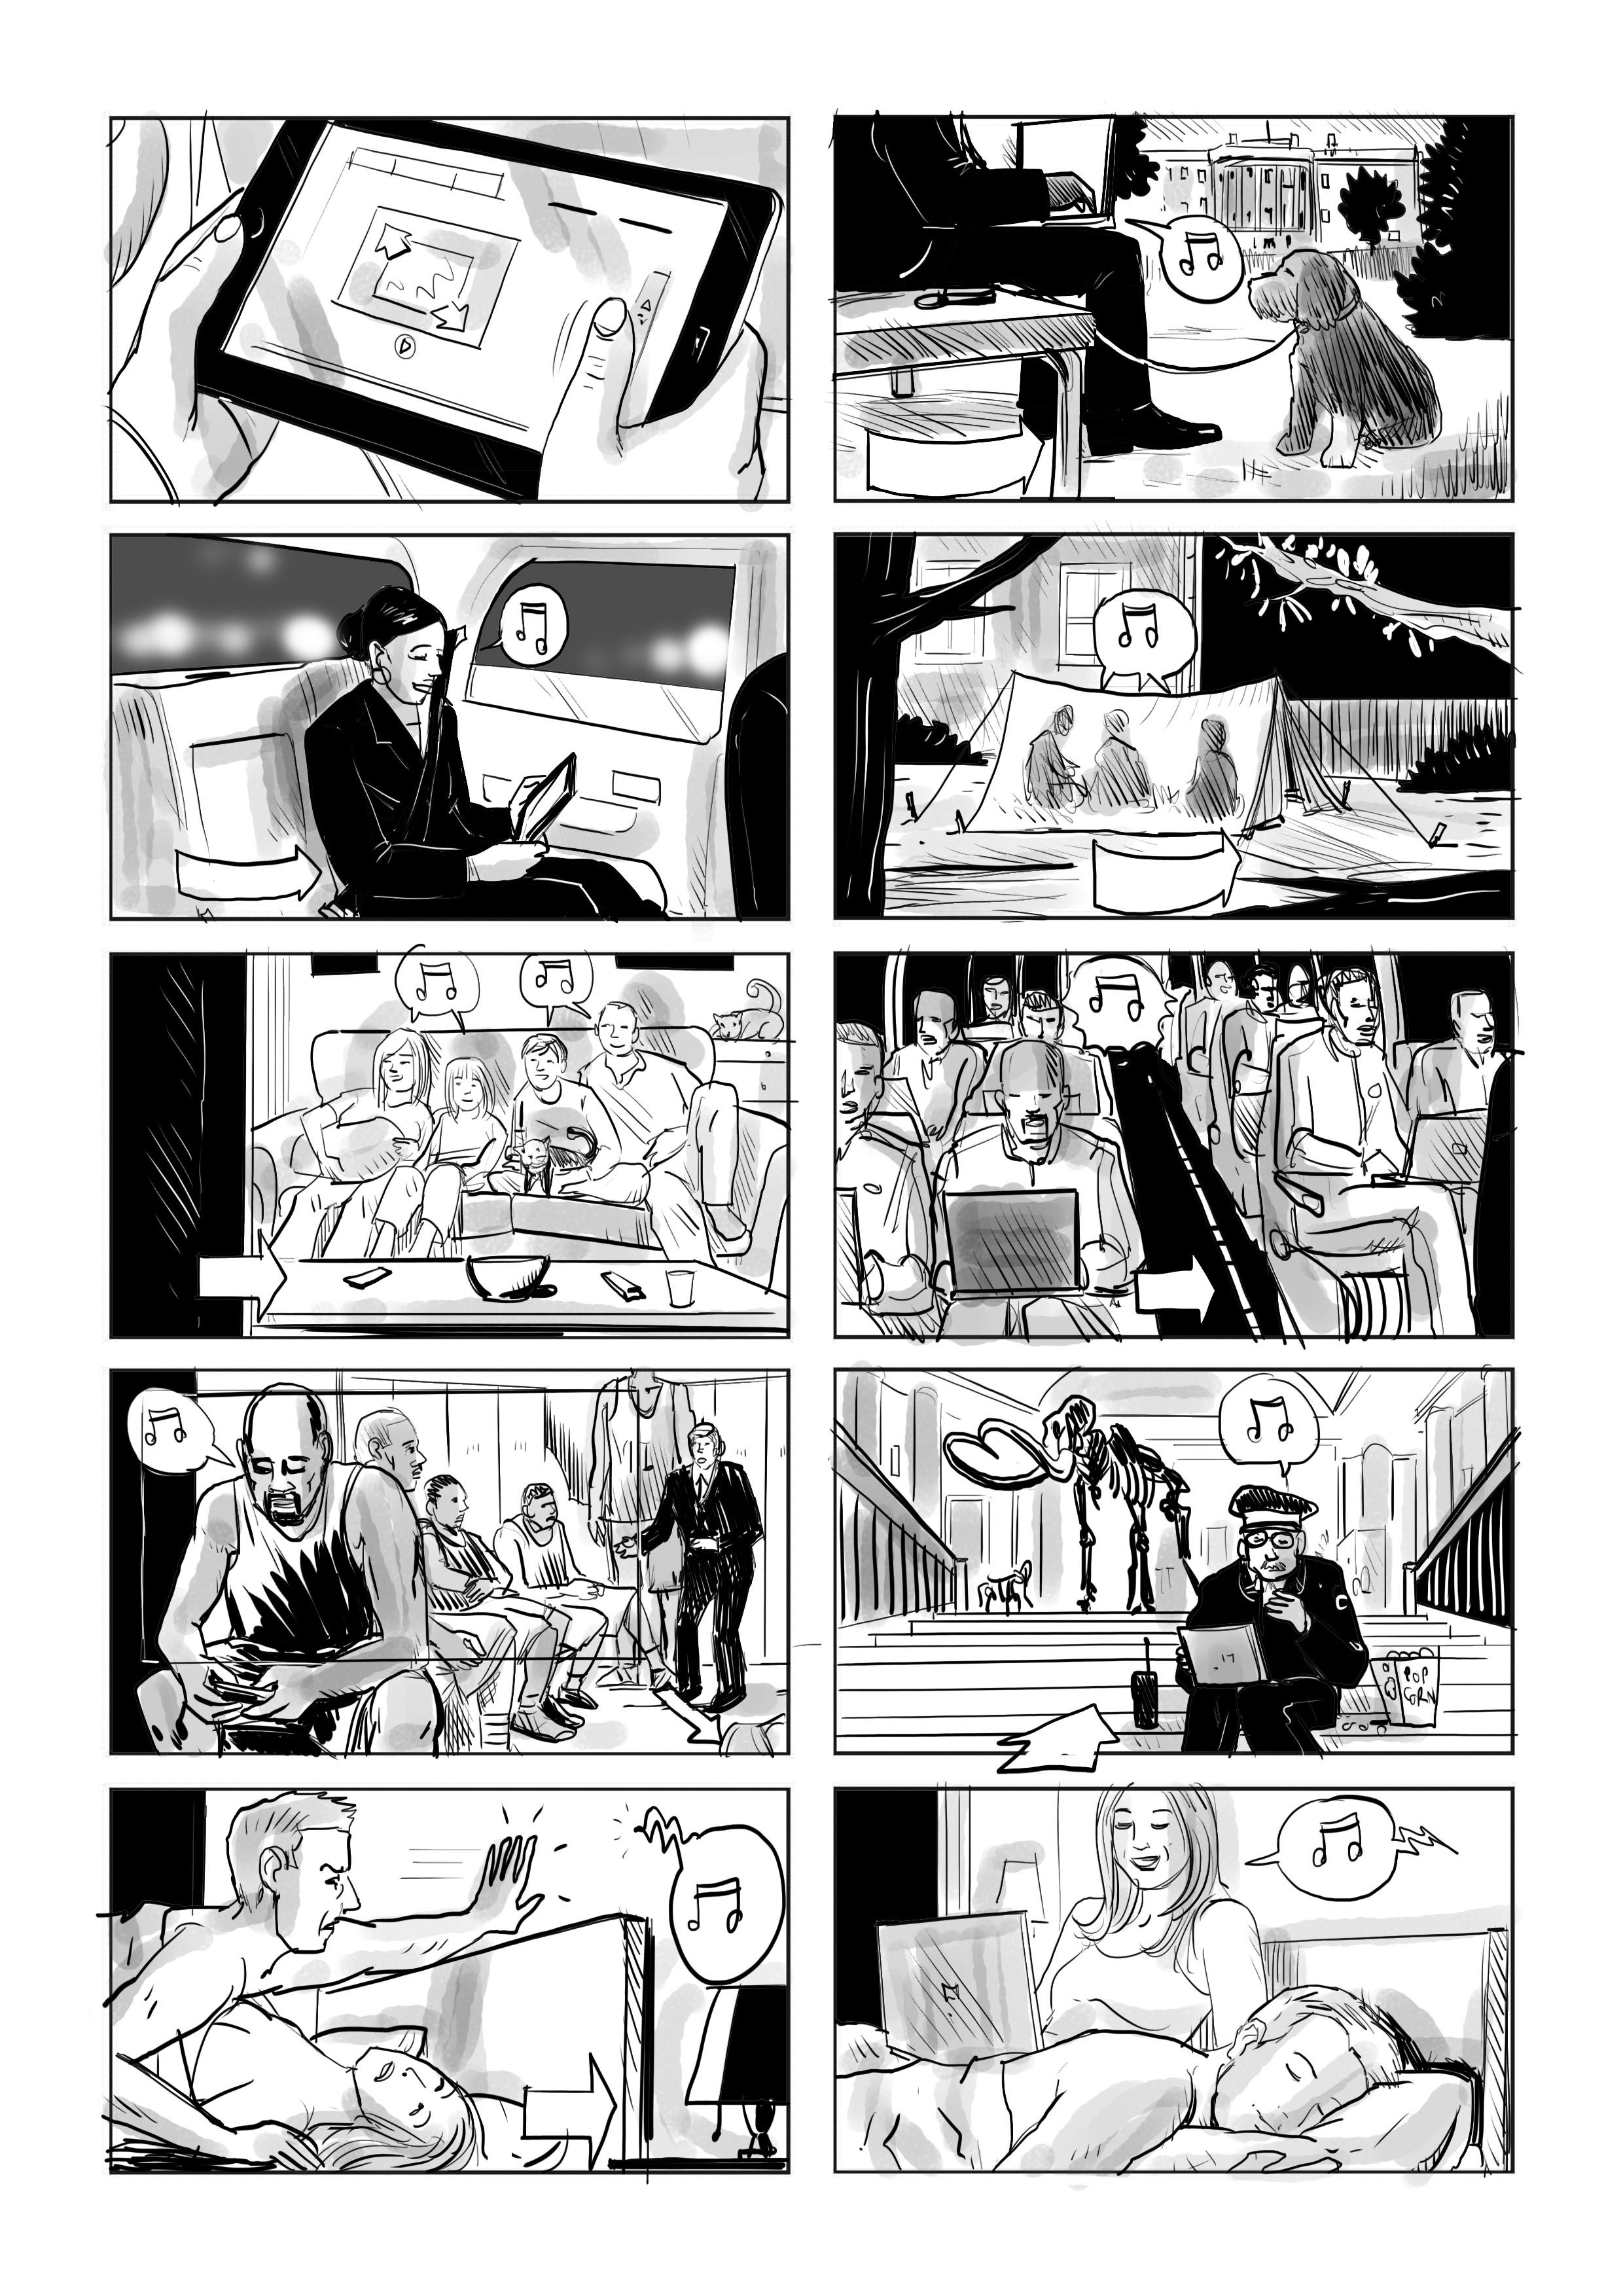 Storyboard For Tv Commercial By Giuseppe Cristiano Www